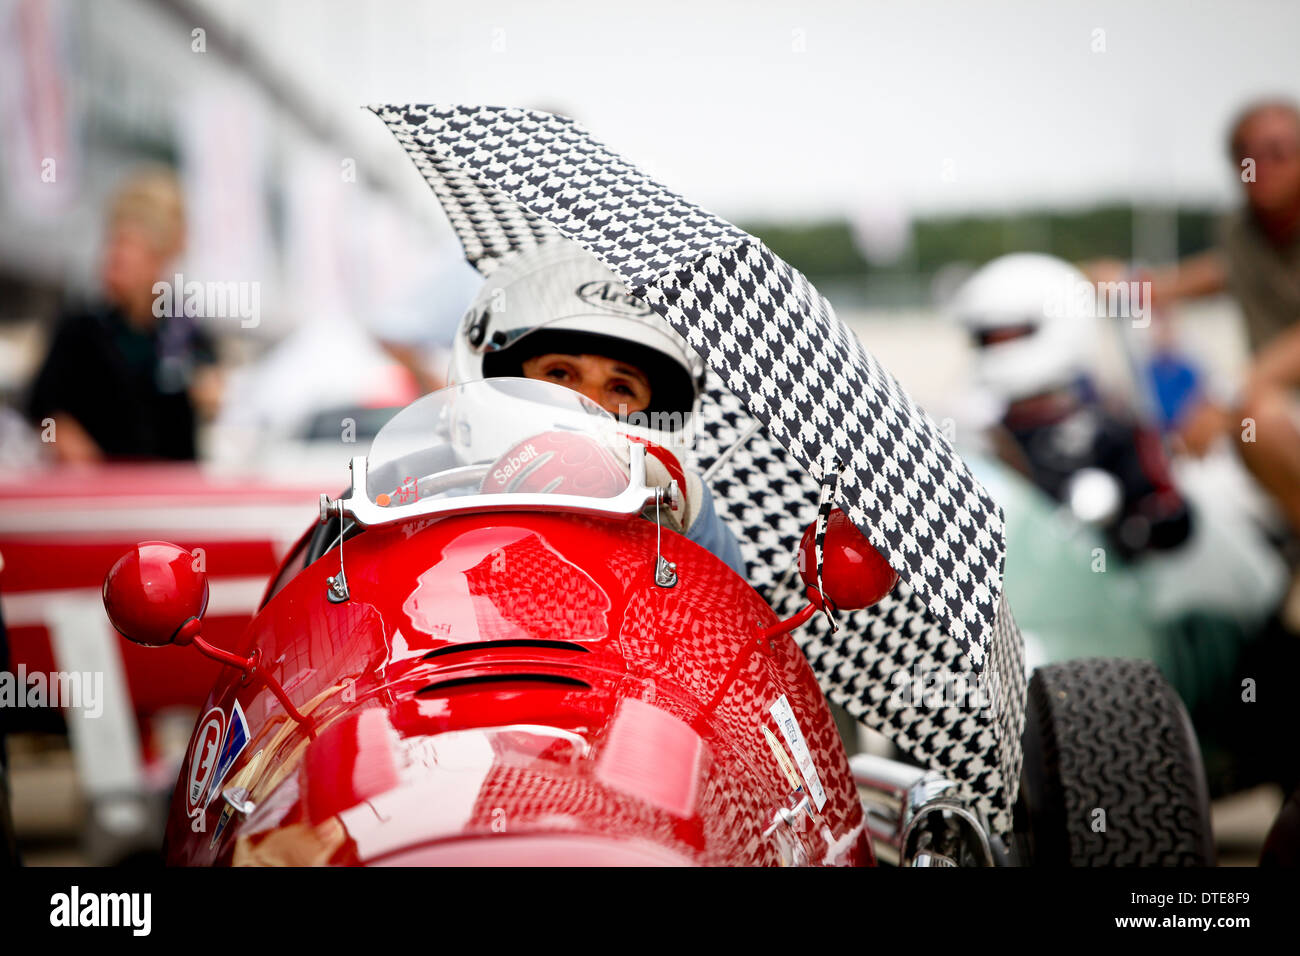 A female racing driver in a red single seater with a houndstooth check umbrella for shade - Stock Image